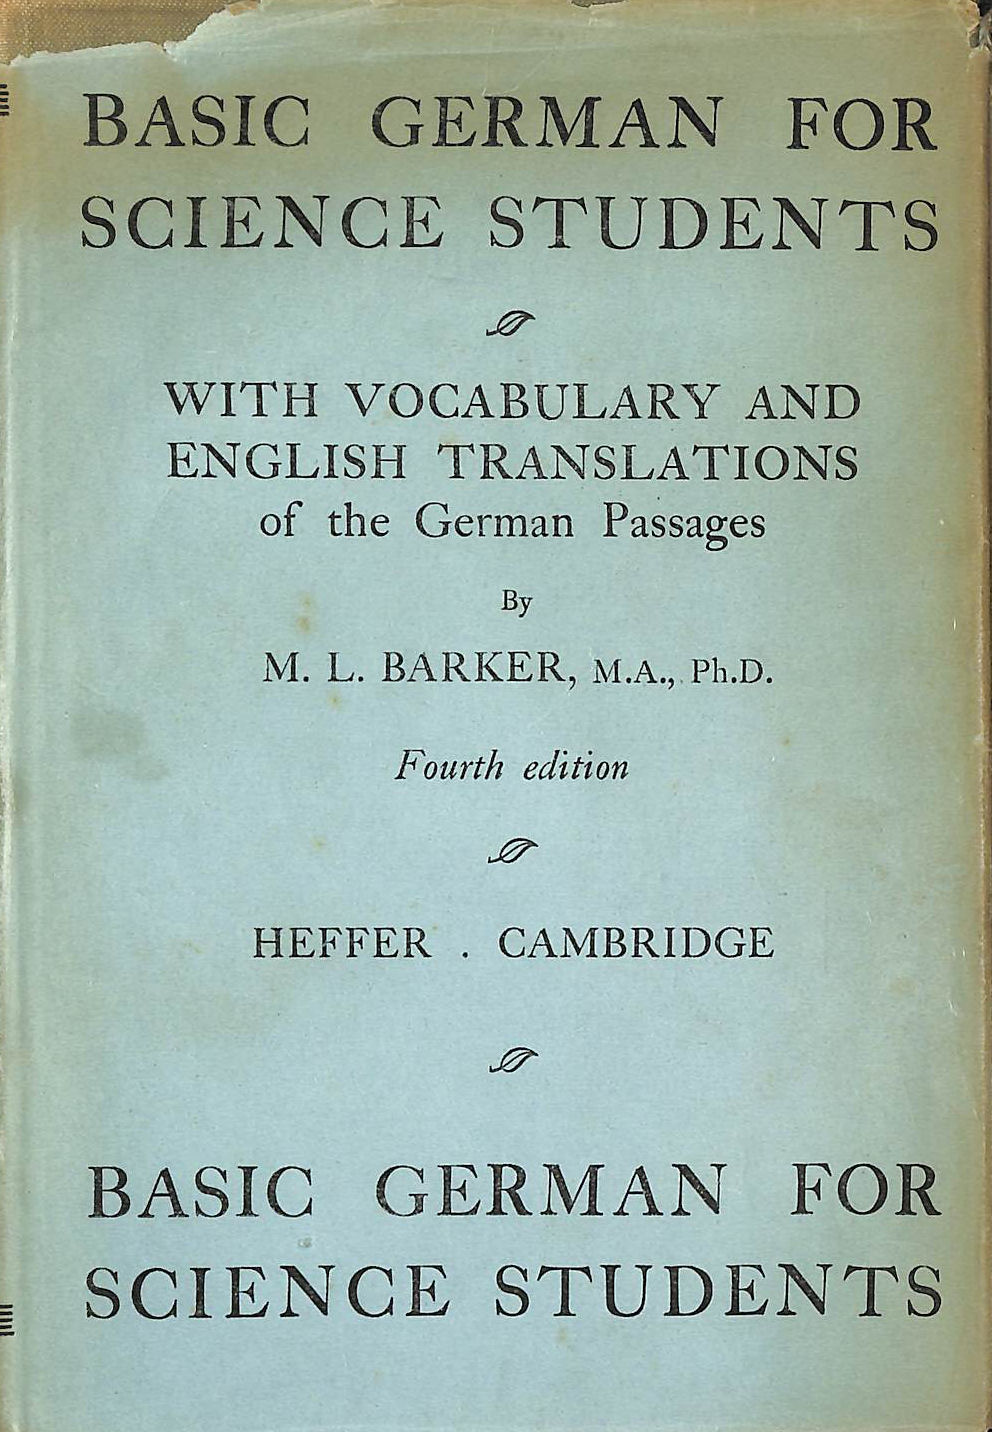 Image for Basic German for Science Students